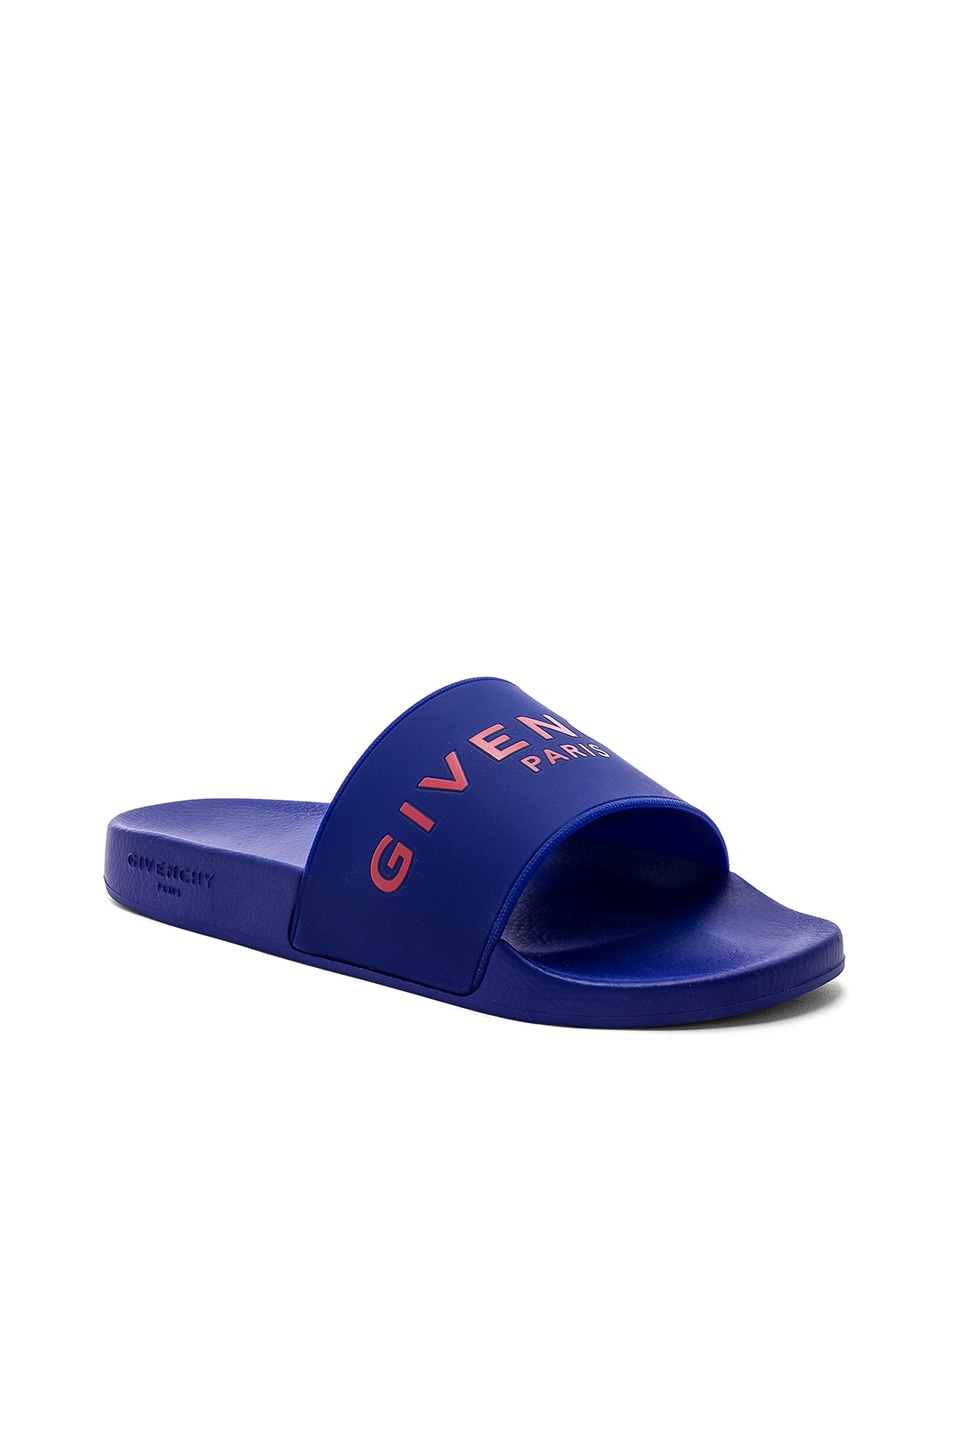 71774dc7e129 Image 1 of Givenchy Logo Slides in Blue   Red